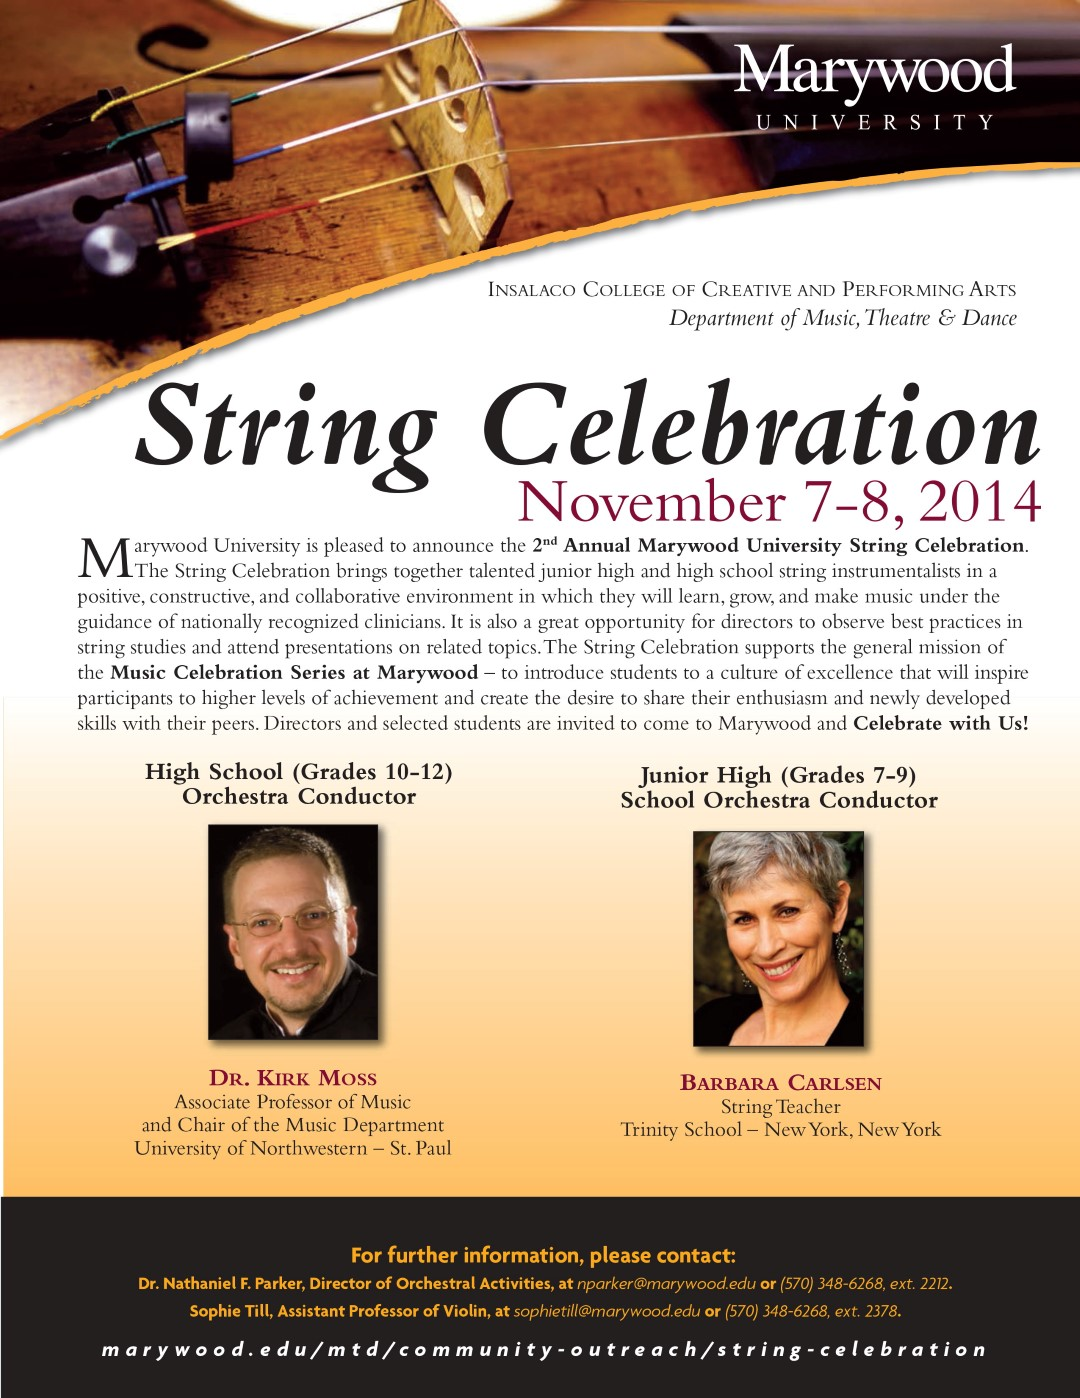 String Celebration Flier